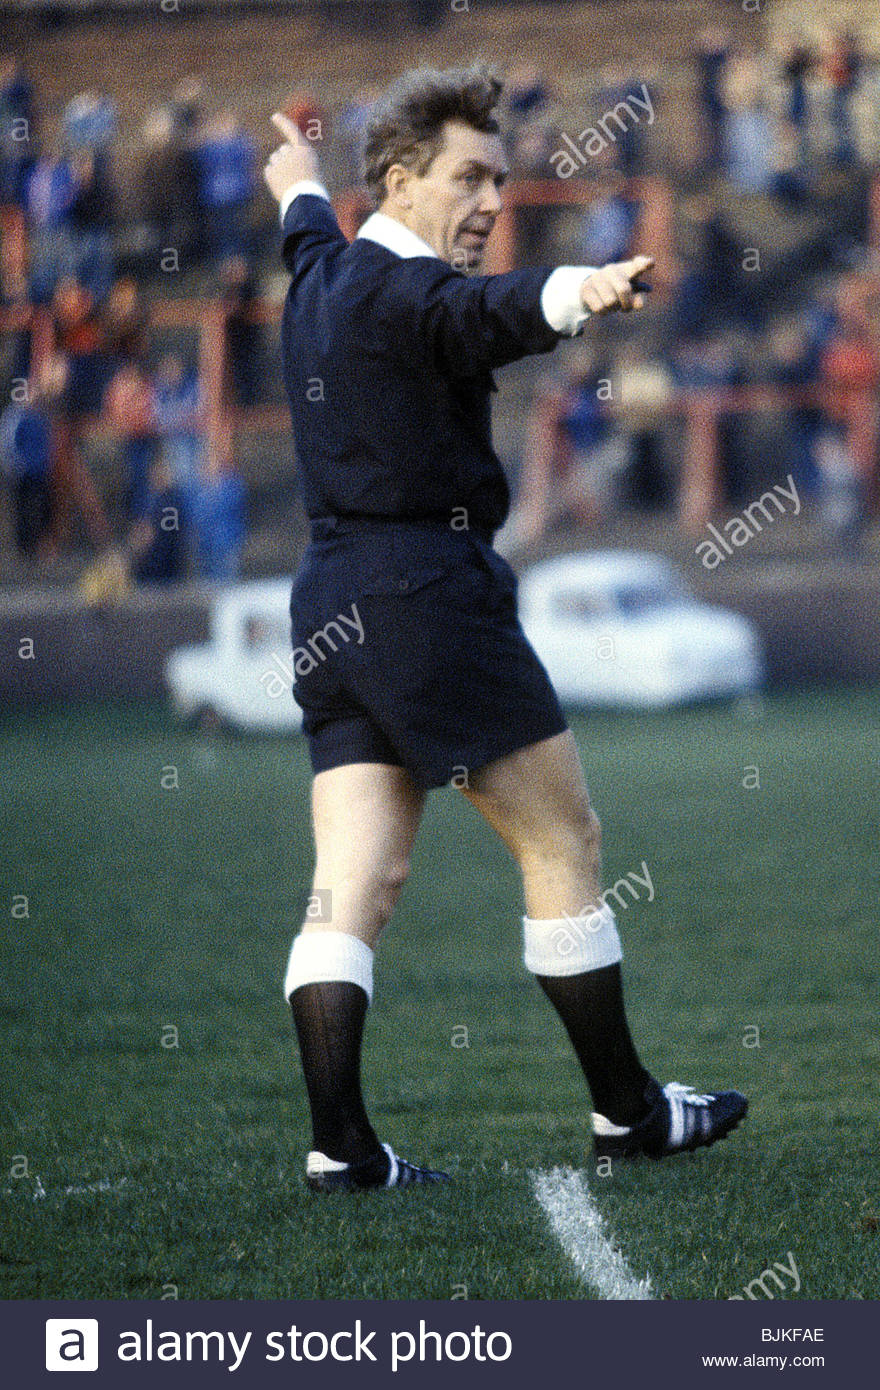 18/11/78 PARTICK THISTLE V ST MIRREN (2-1) FIR HILL - GLASGOW Referee Ian Foote - Stock Image